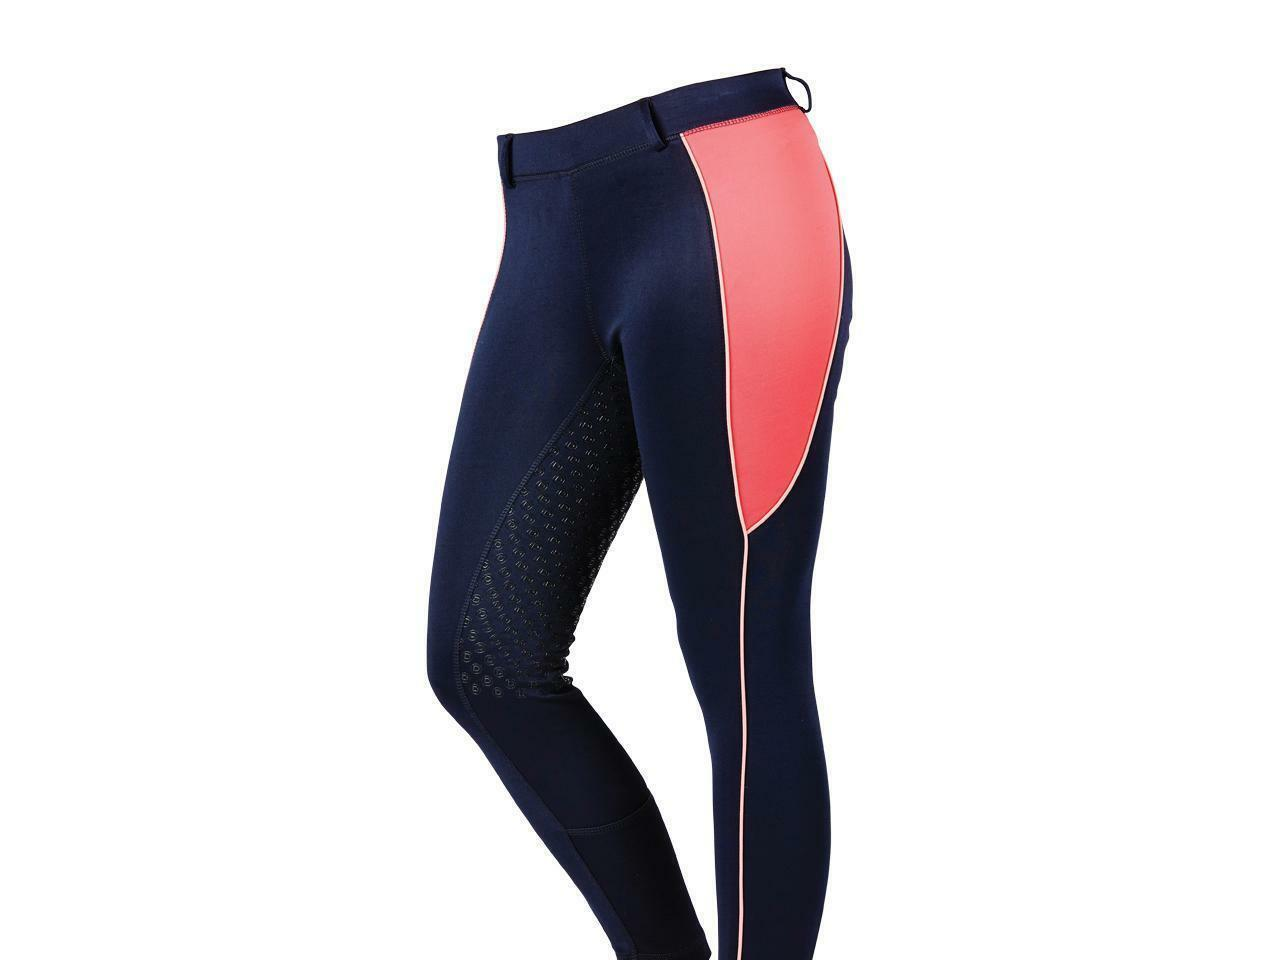 Dublin Performance Flex Zone Riding Tights - Navy Pink   classic fashion